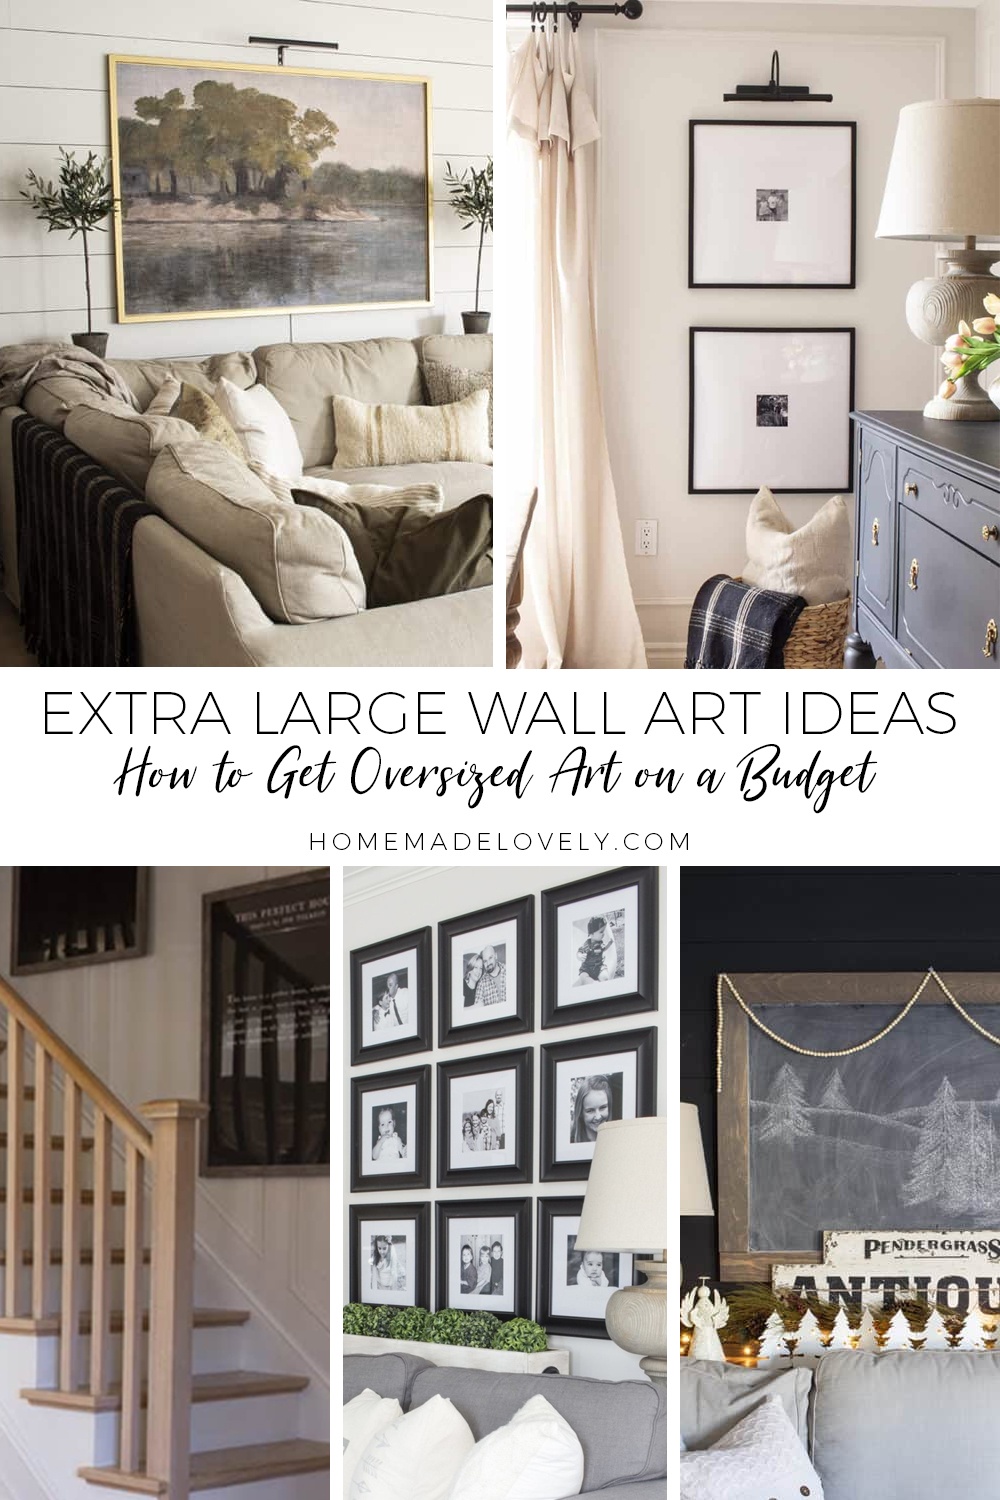 extra large wall art ideas pin with multiple images of large art